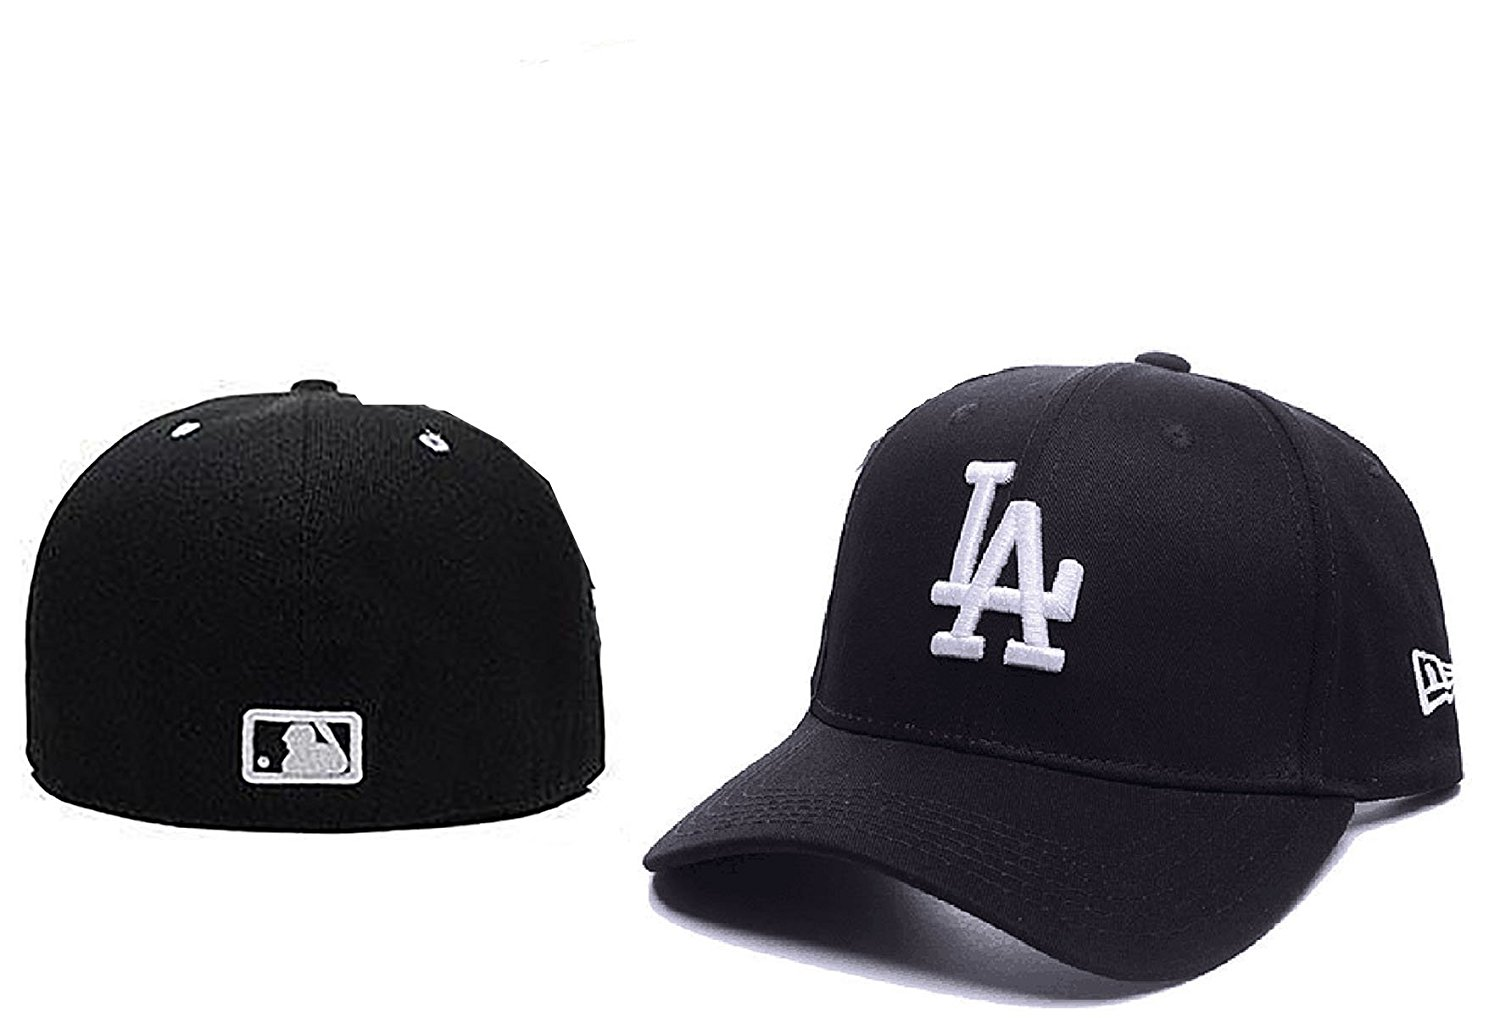 d878ff0326e Get Quotations · Los Angeles Dodgers Adjustable Cap Hat MLB Embroidered On  Field Game Home one size fit all